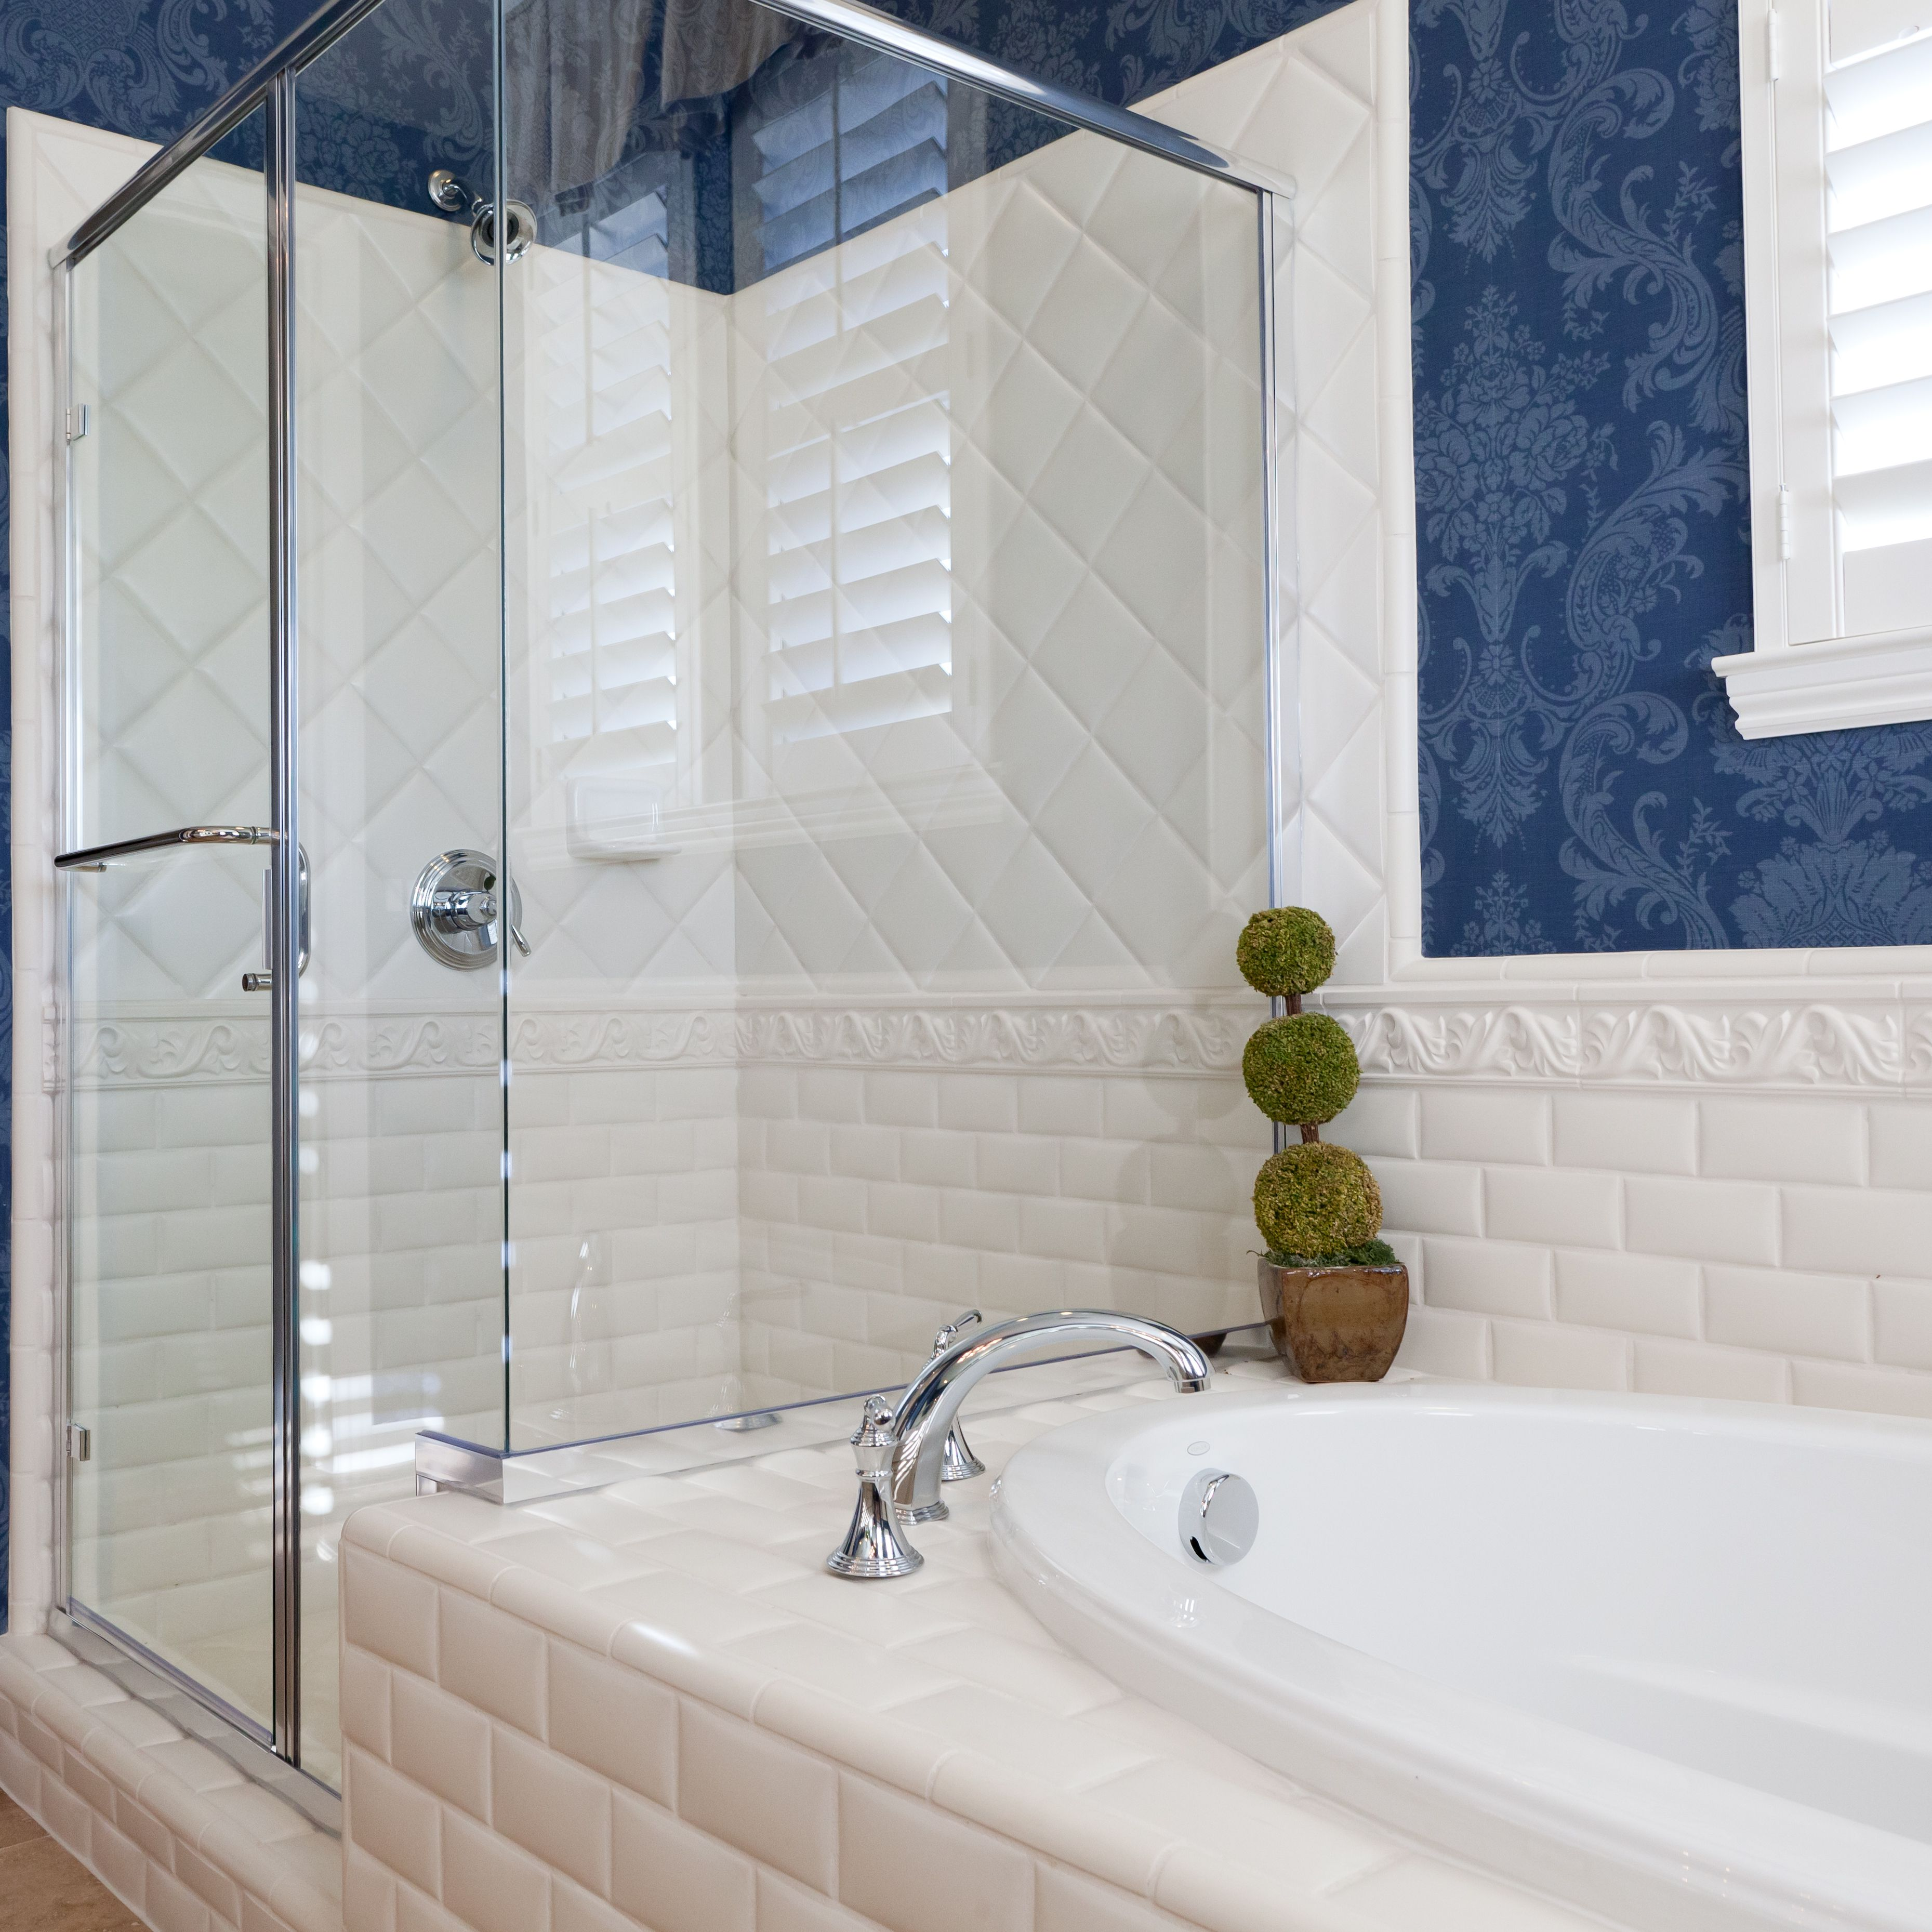 decorative glass block borders for a shower wall or windows.htm 5 smart ways to use wallpaper in your bathroom  wallpaper in your bathroom